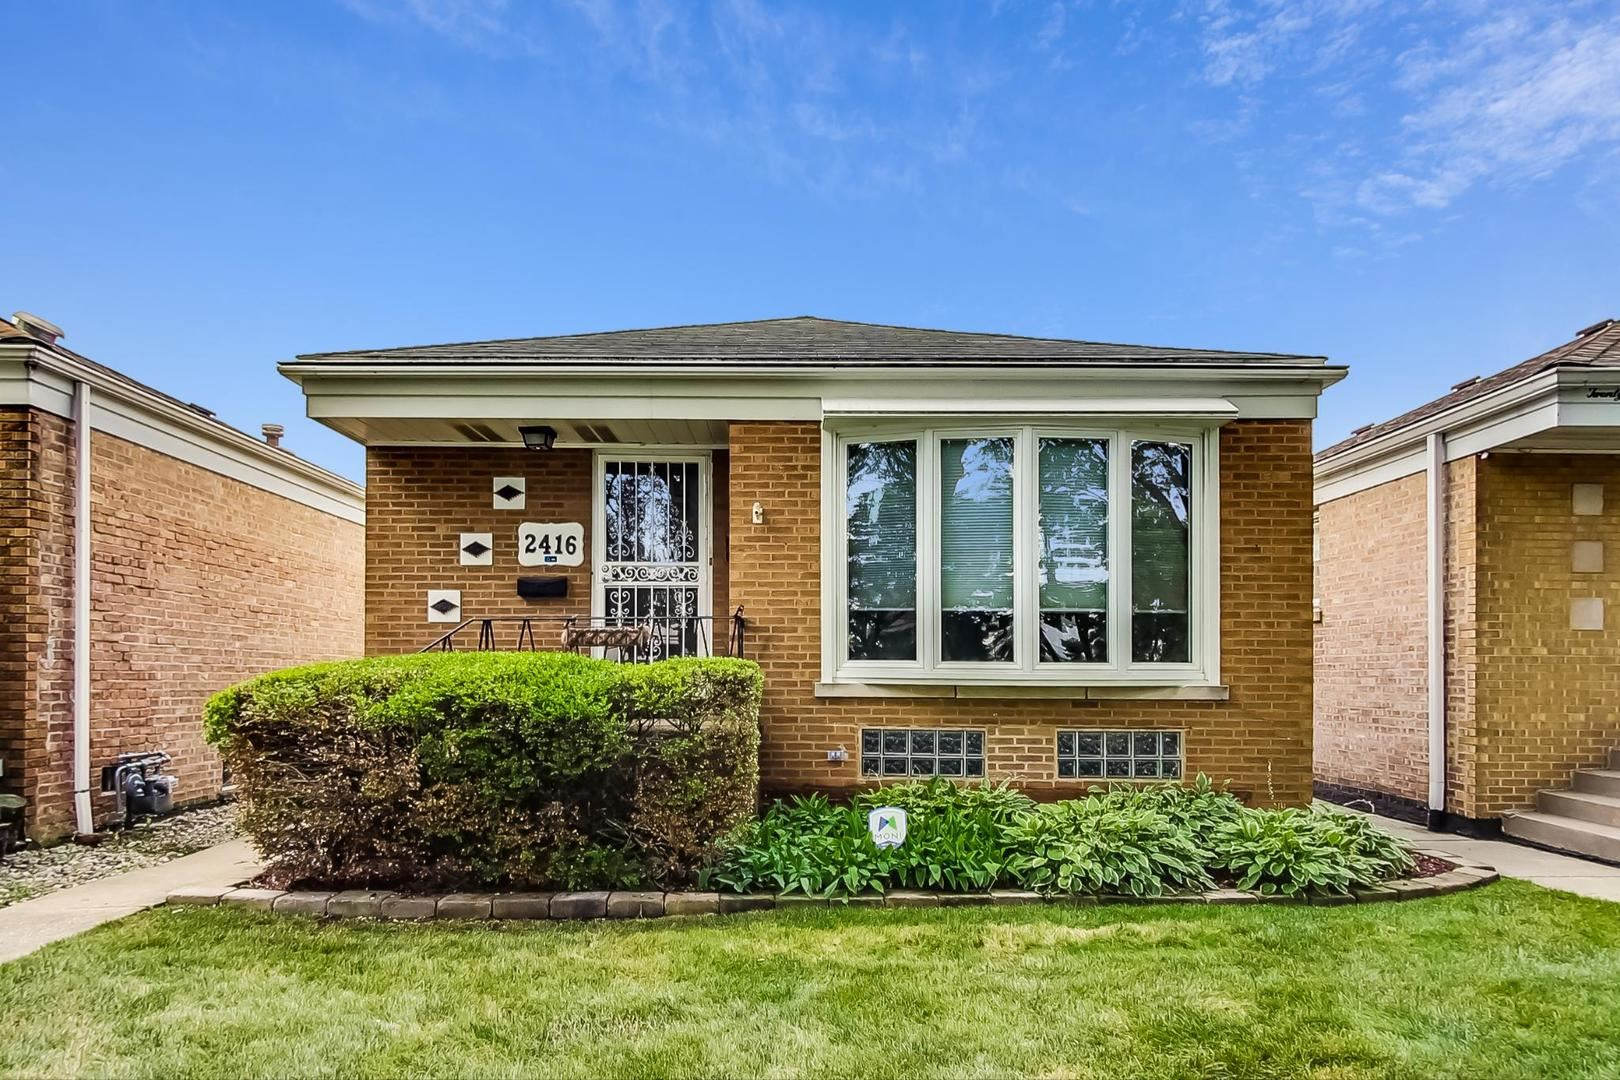 2416 Lathrop Avenue, North Riverside, IL 60546 - #: 10812616